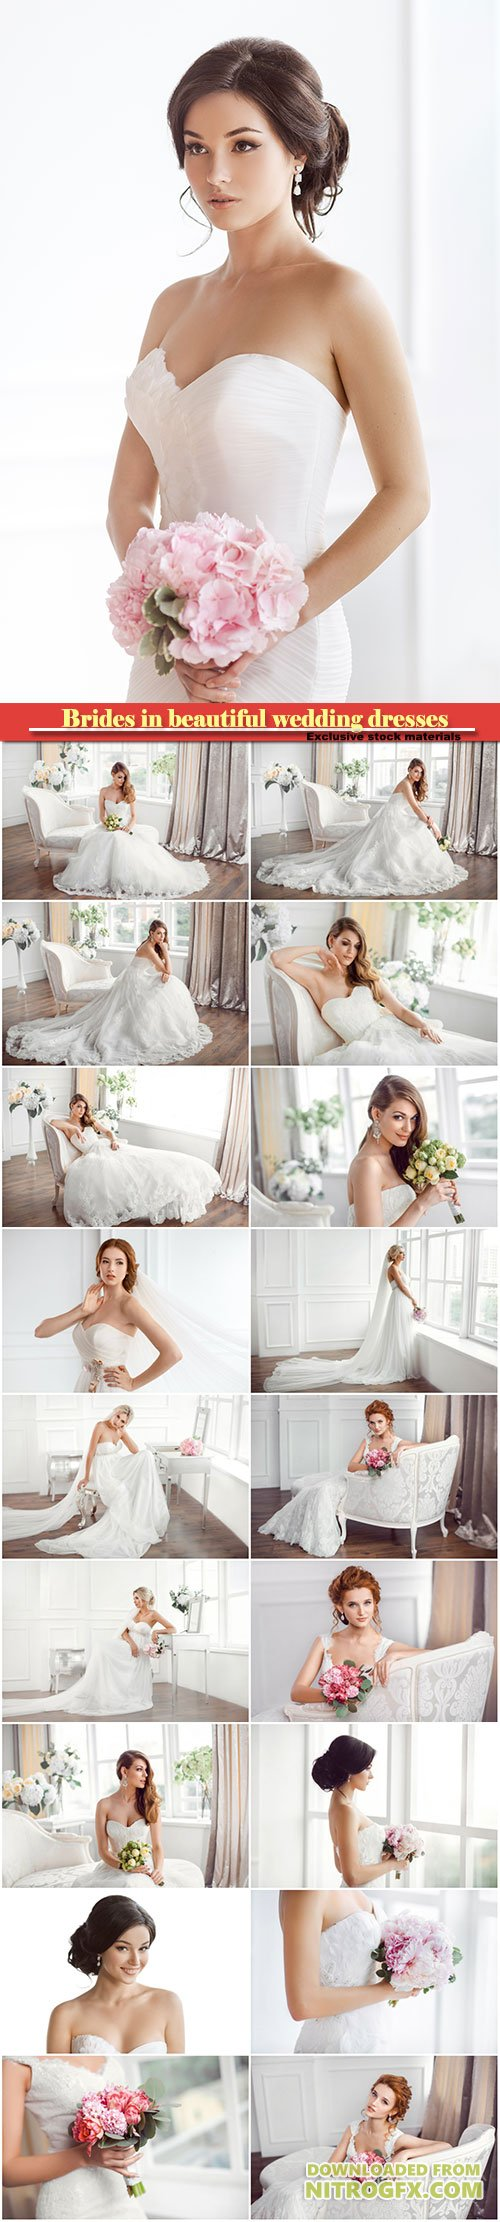 Charming brides in beautiful wedding dresses